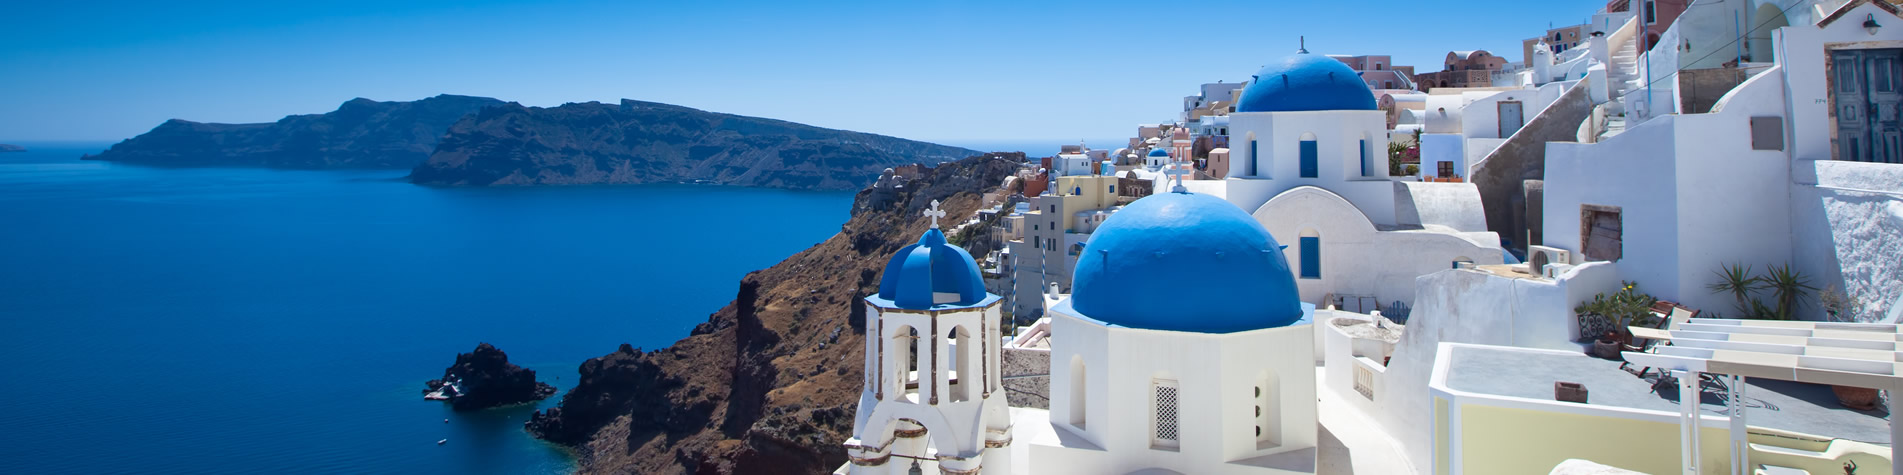 Mediterranean Cruise Holidays with Cyplon Holidays